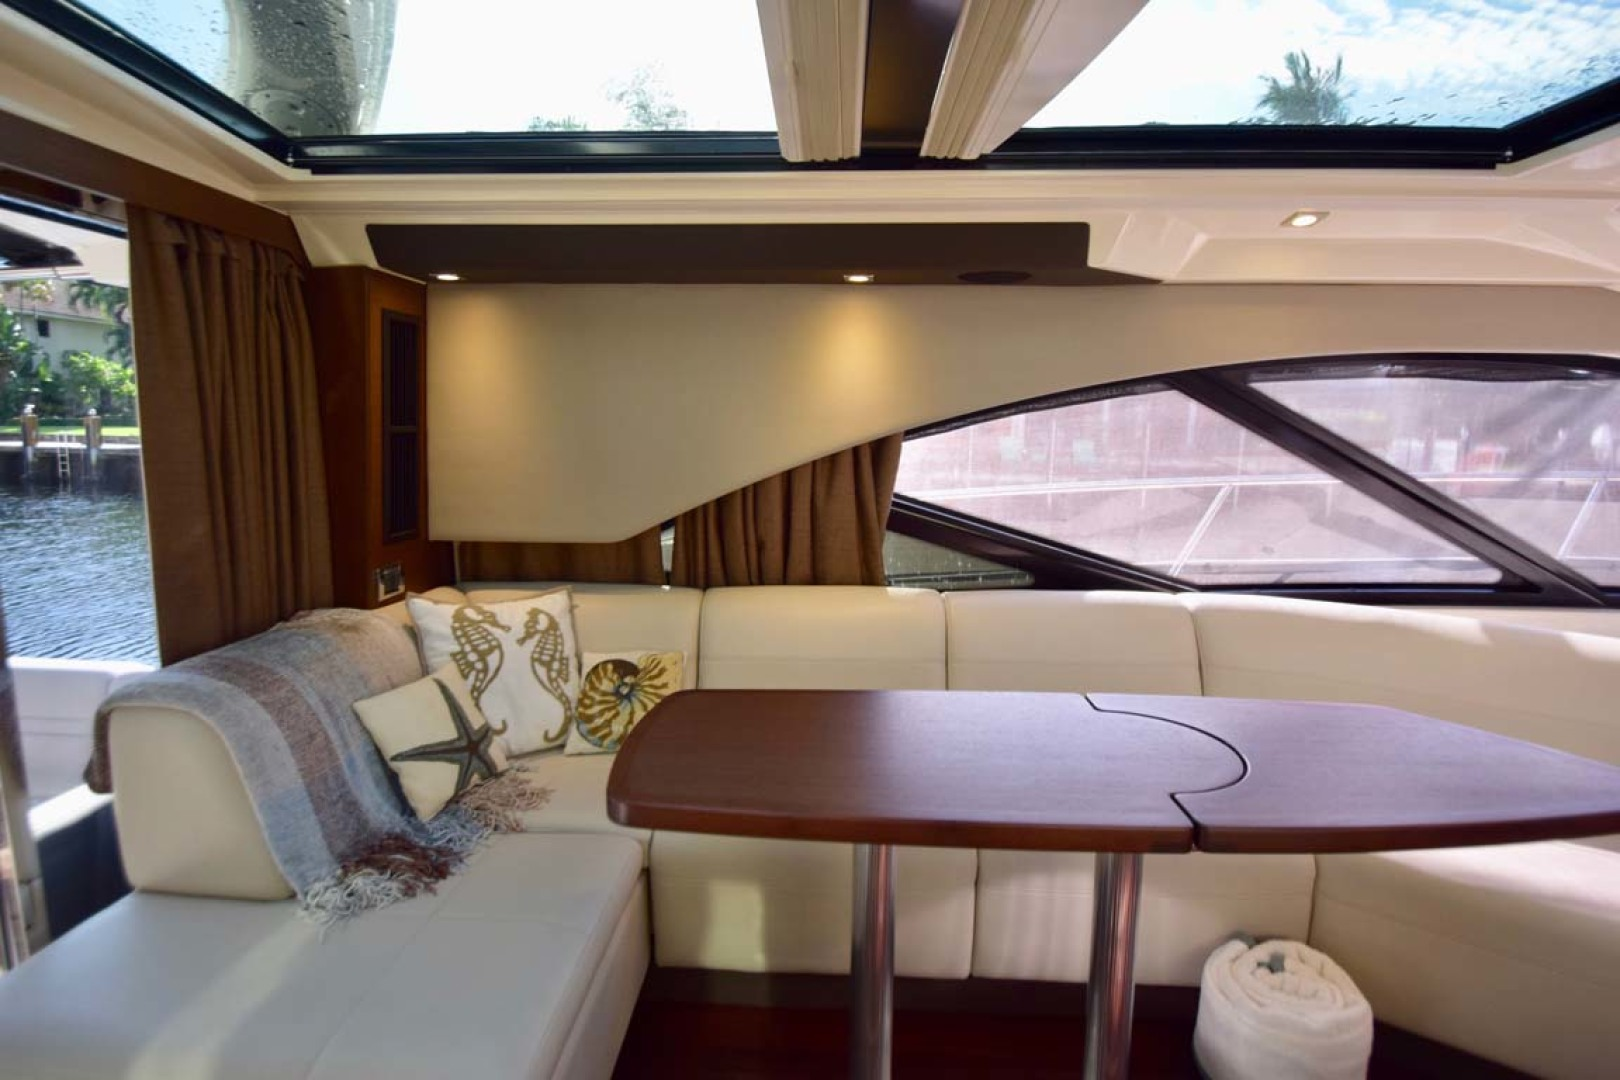 Sea Ray-510 Sundancer 2015 -Ft Lauderdale-Florida-United States-Salon View To Starboard-1189920 | Thumbnail